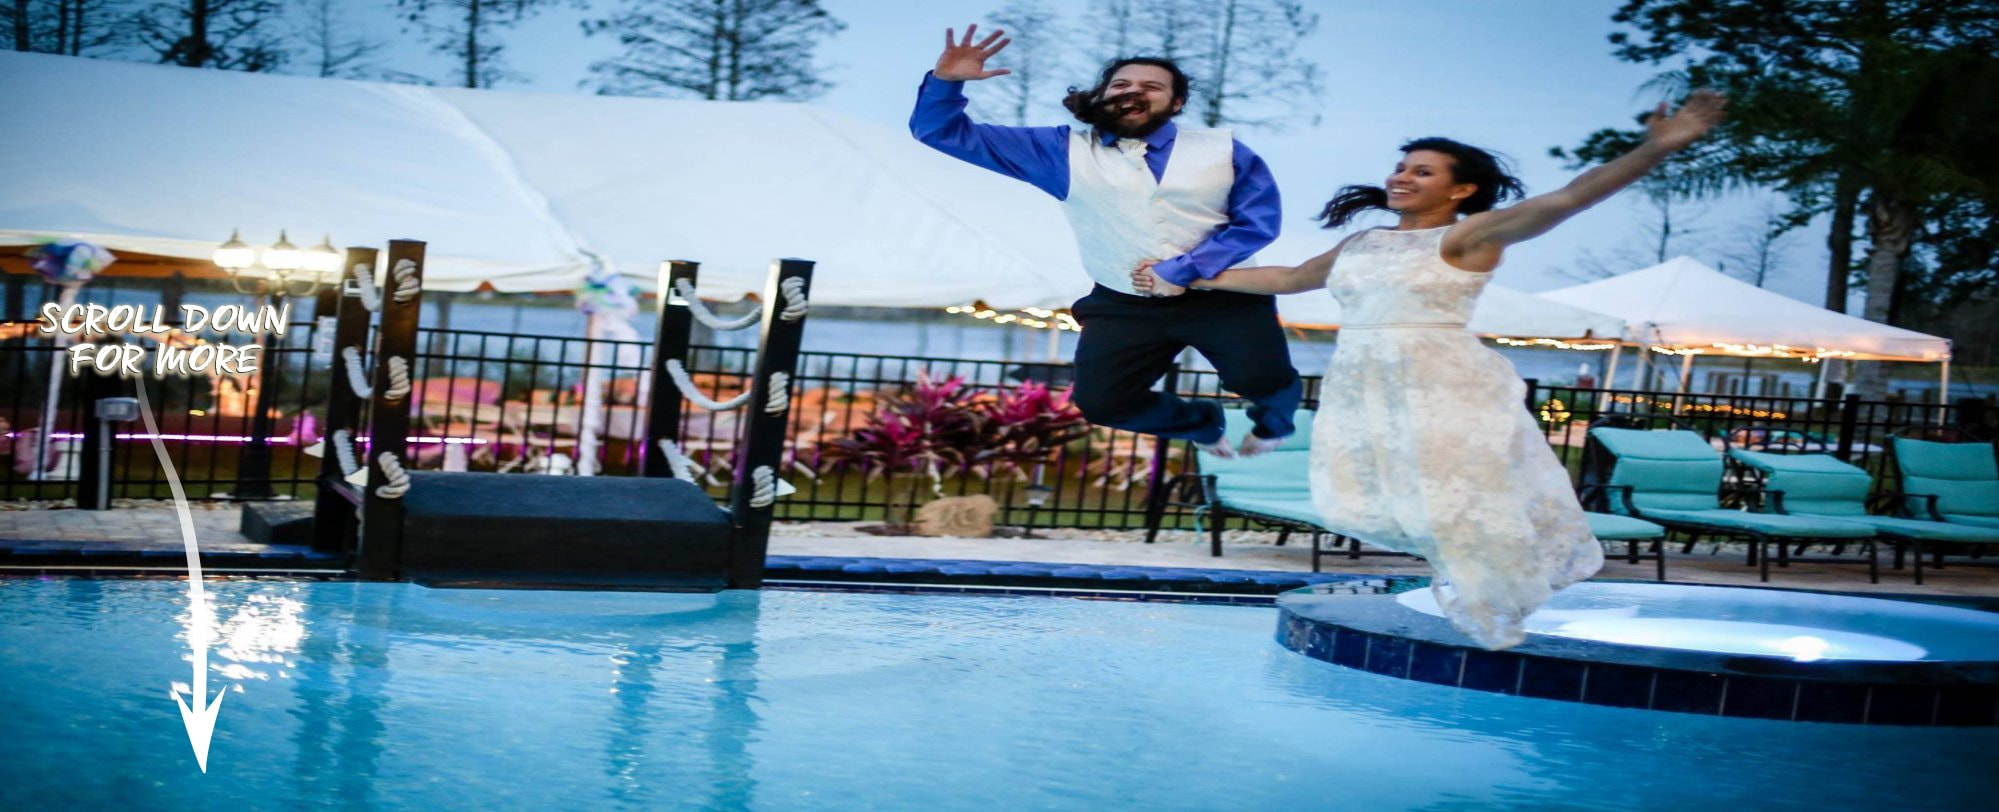 Take the plunge! Have your wedding at The Great Escape Lakeside home